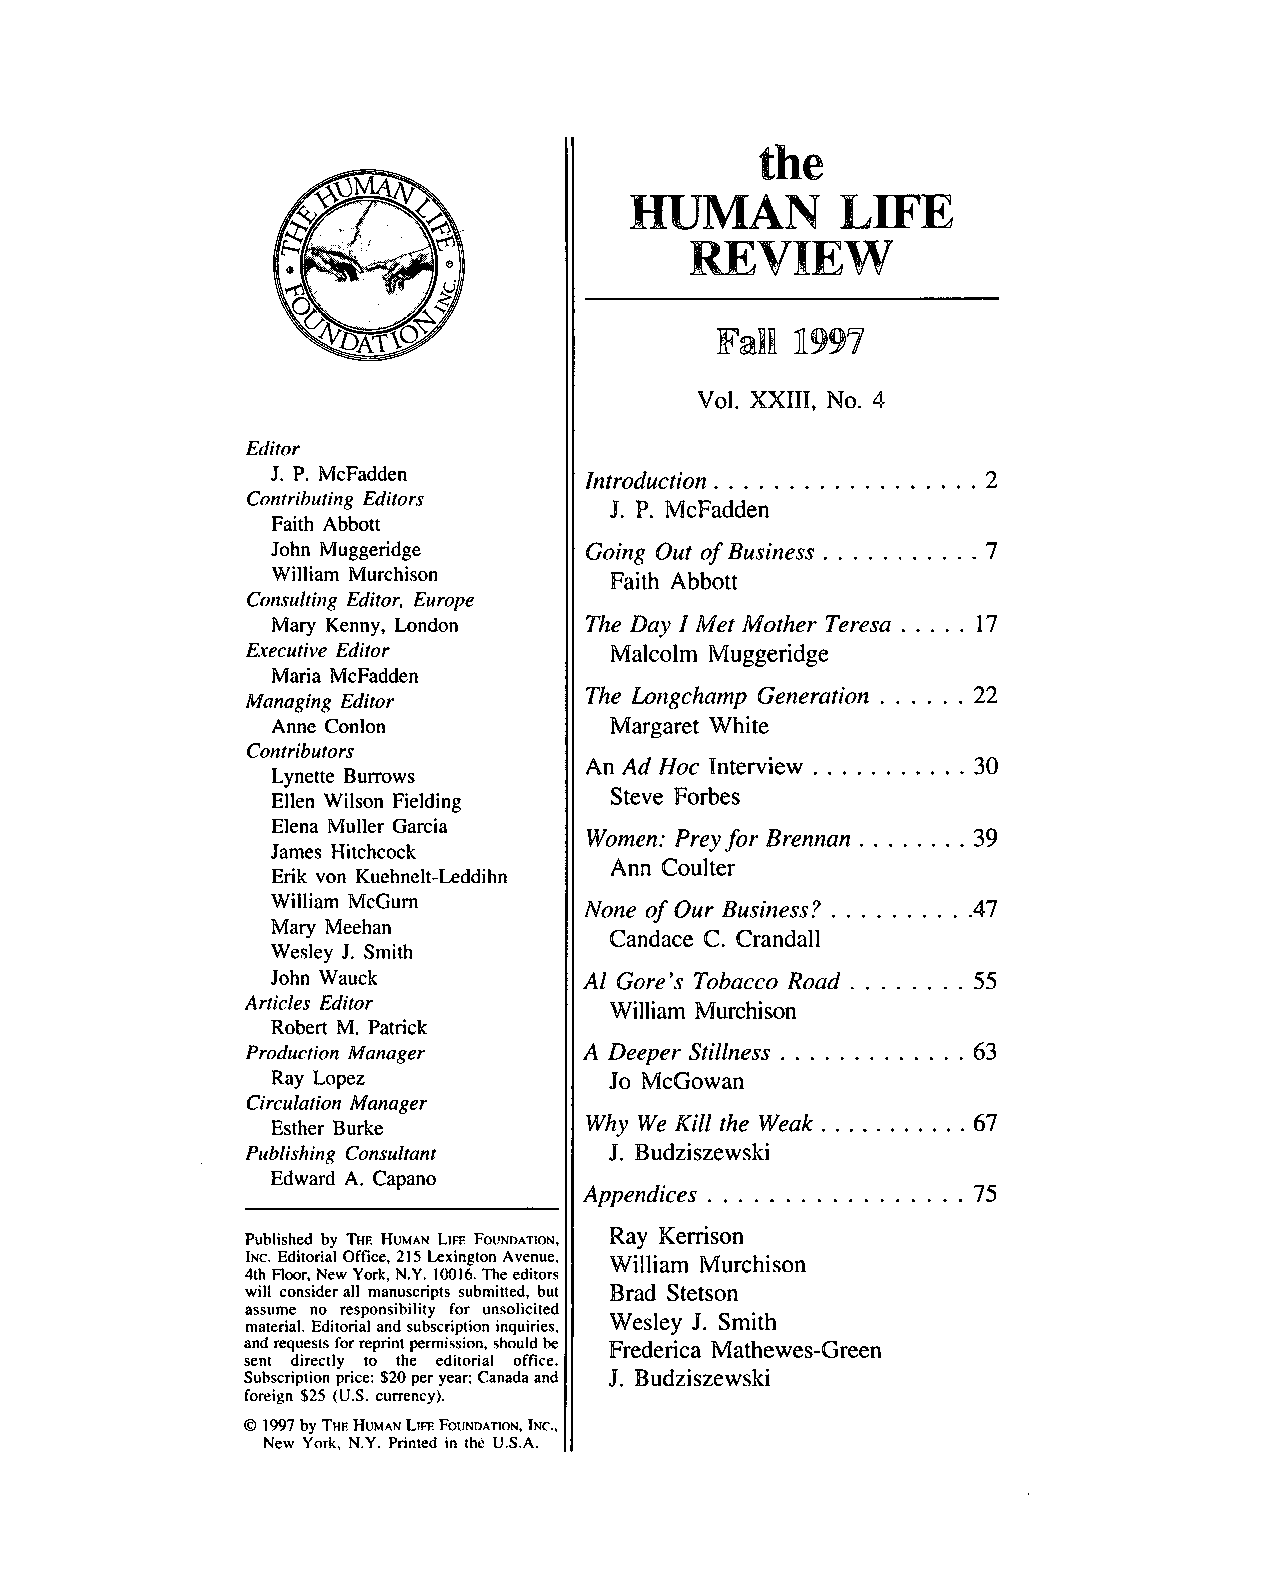 Fatuous Editorial Of Day Prize >> The Human Life Review Fall 1997 The Human Life Review